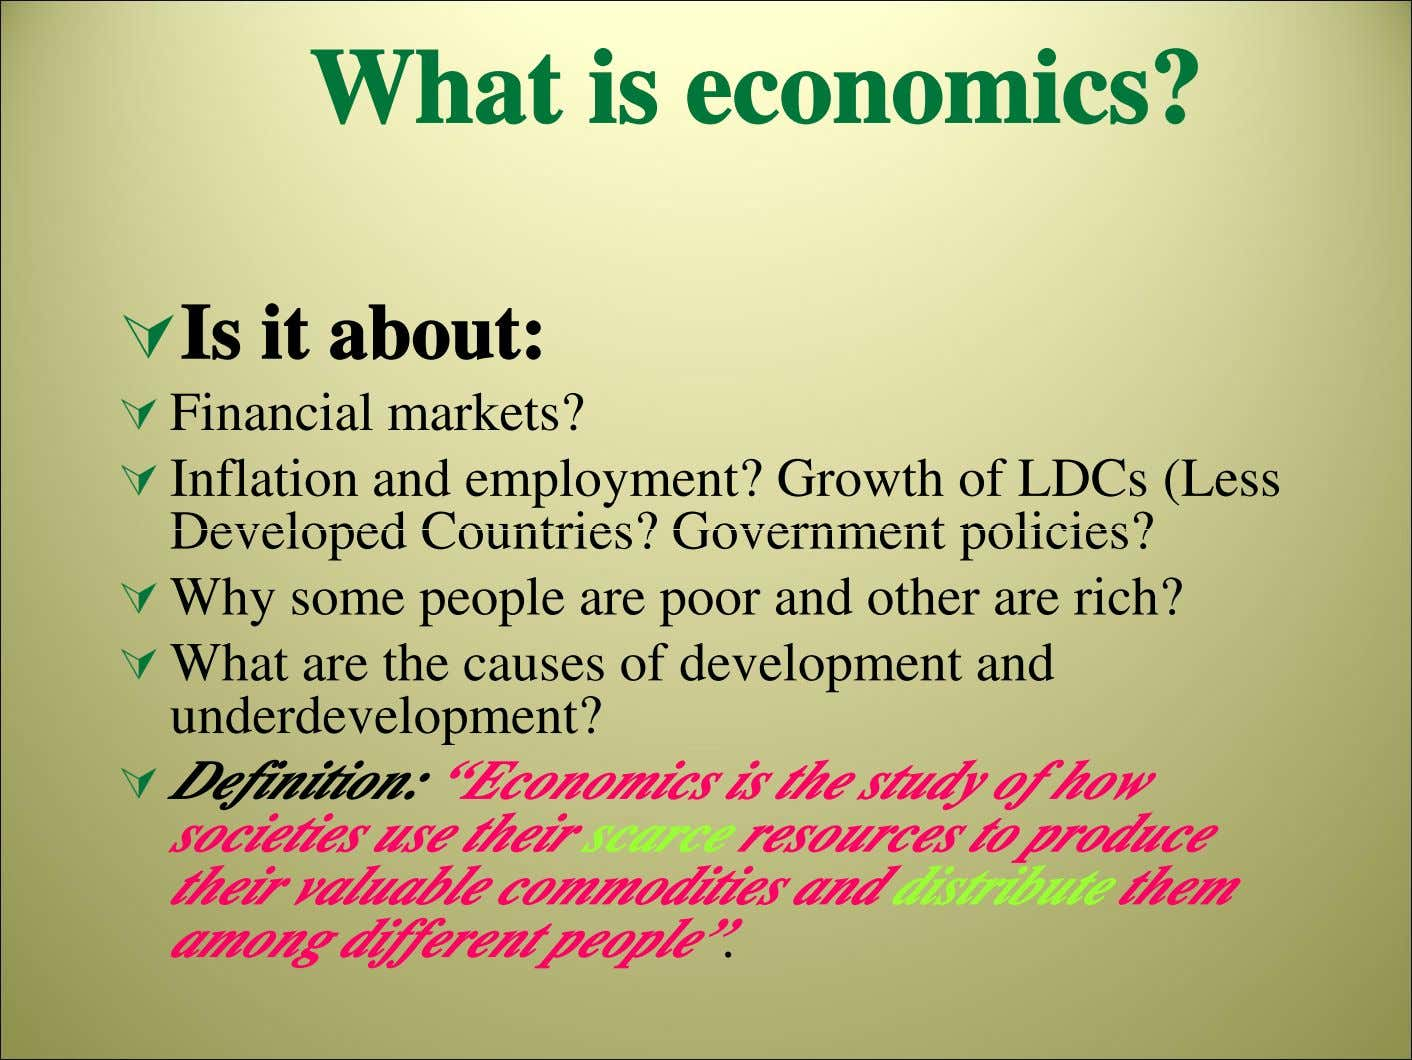 What is economics? Is it about: Financial markets? Inflation and employment? Growth of LDCs (Less